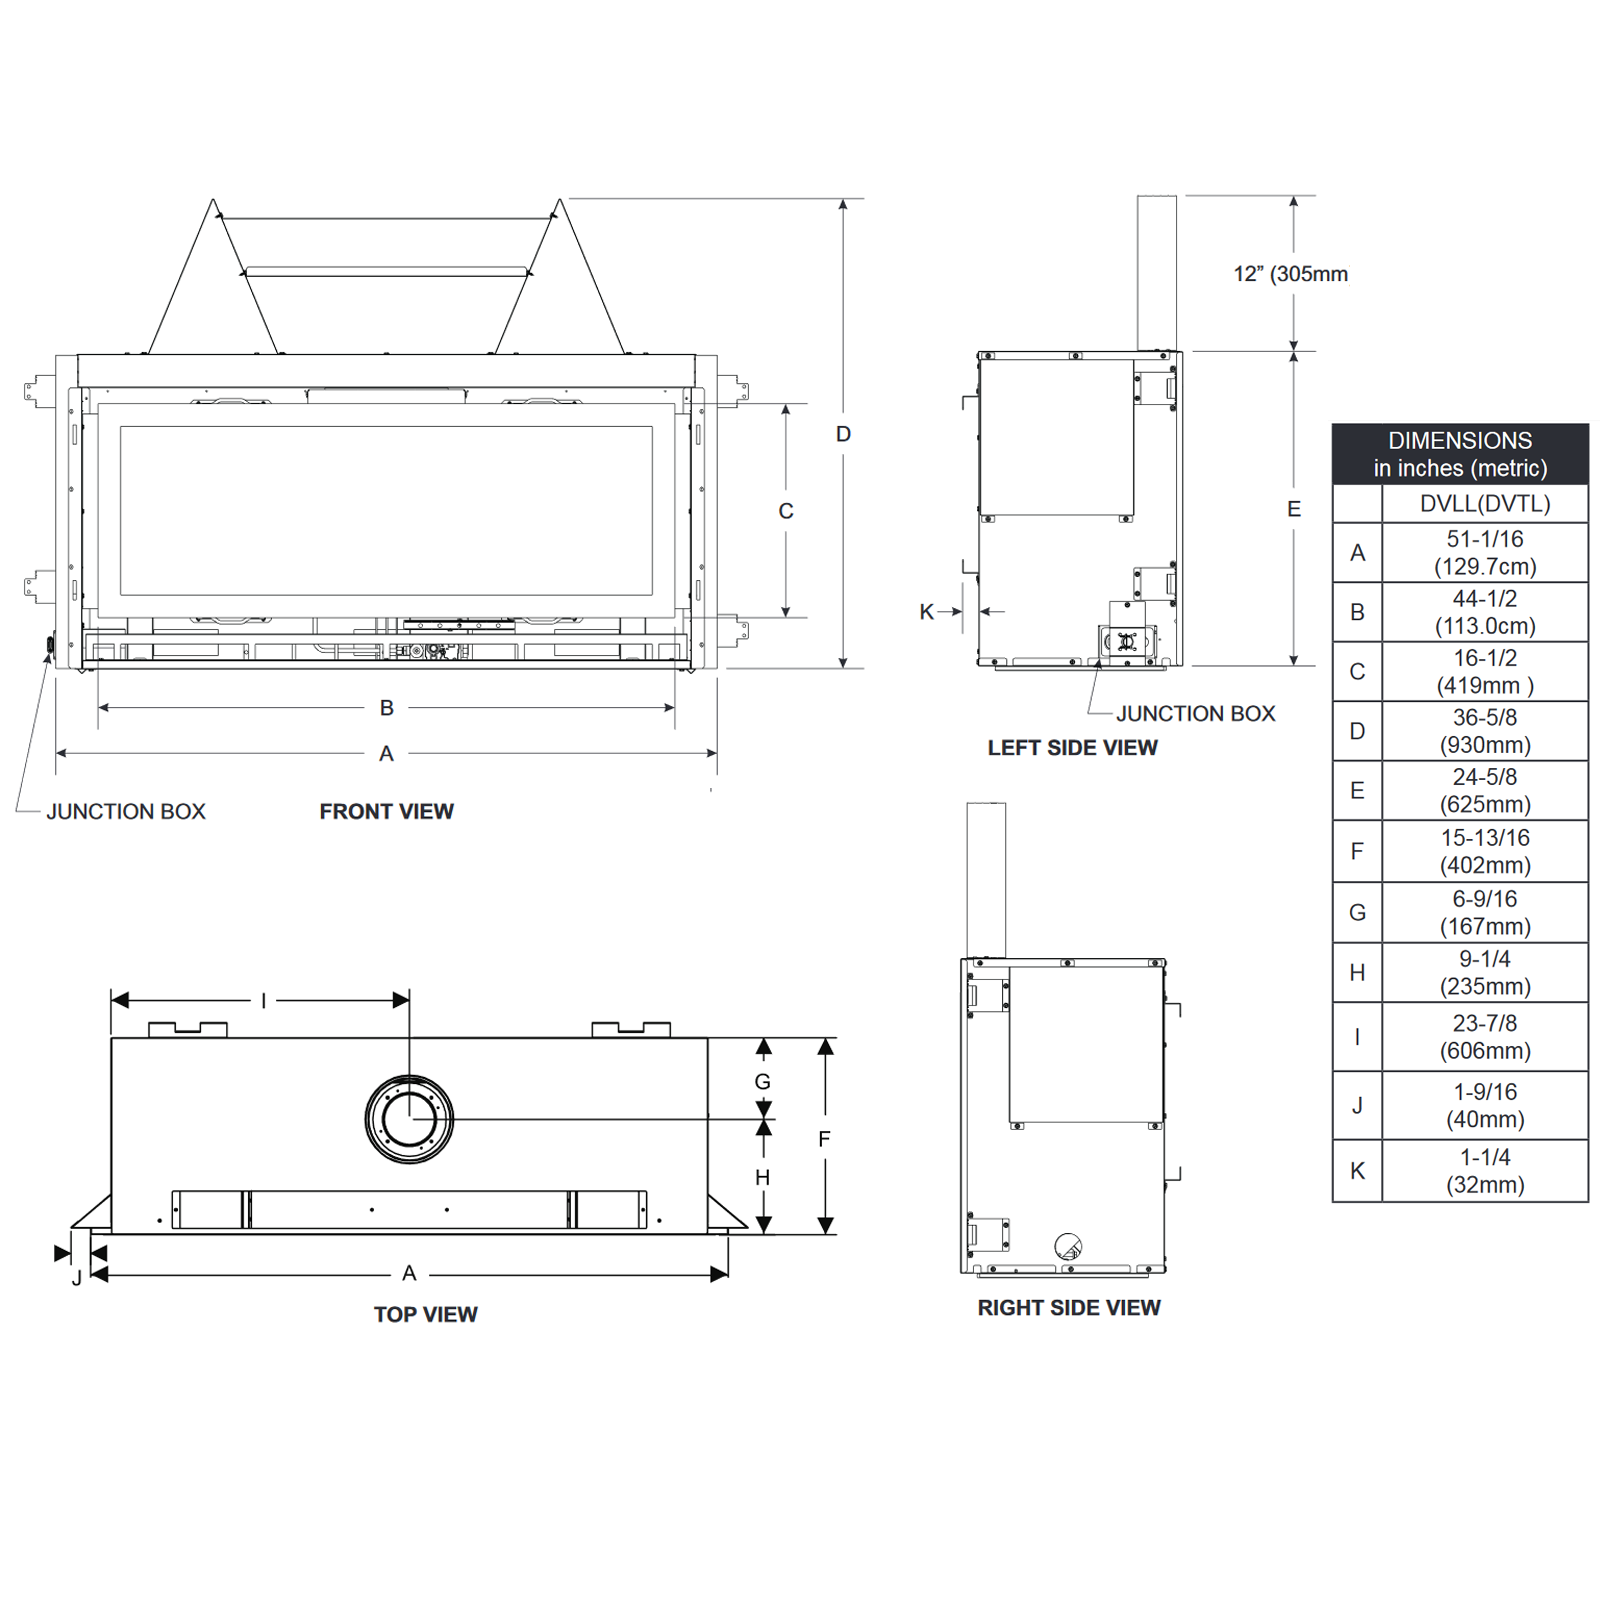 DVTL41 Technical Drawing 1